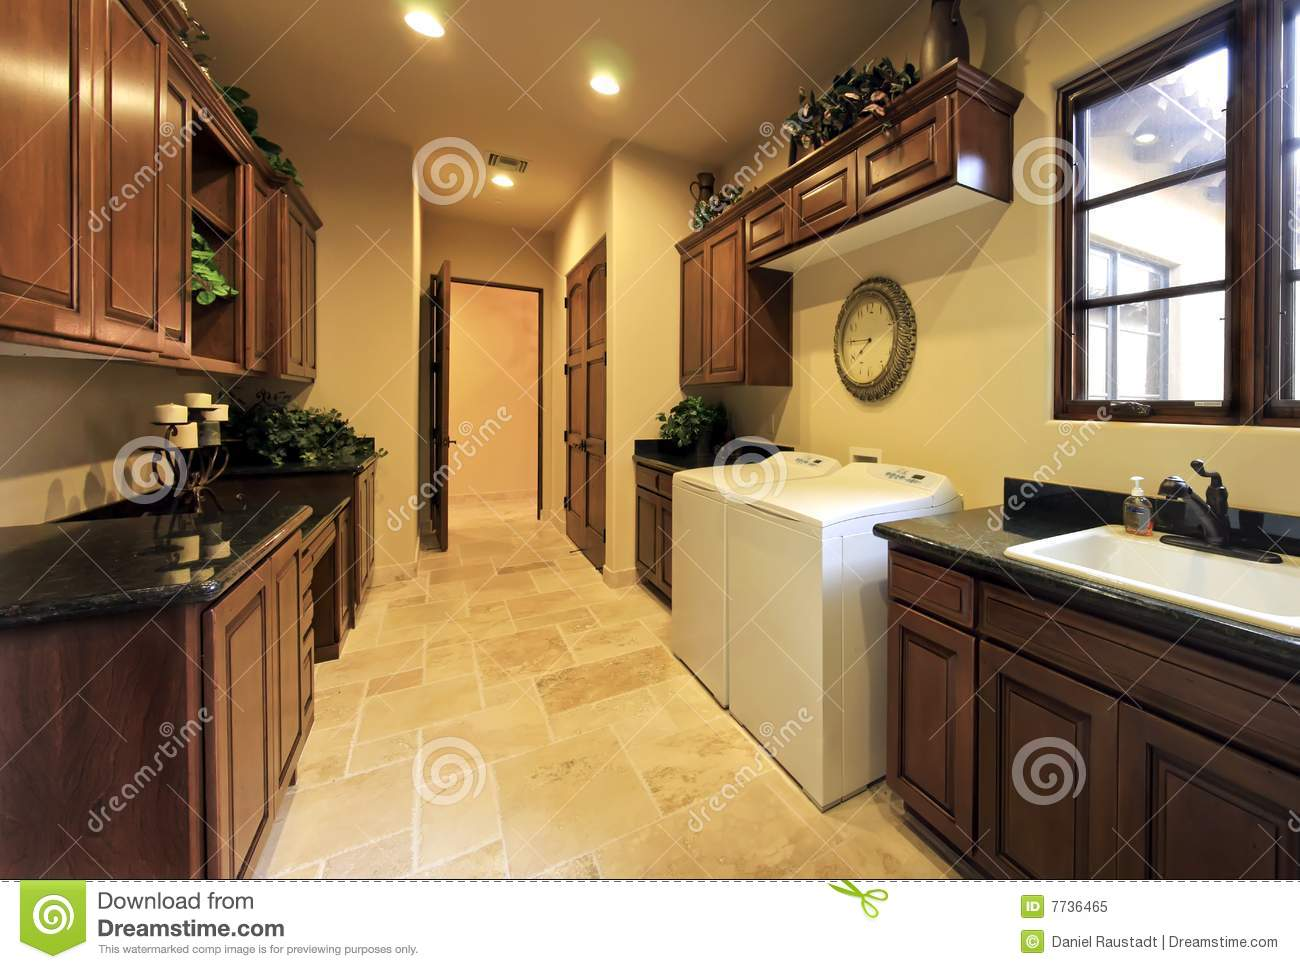 Washer And Dryer Room Design